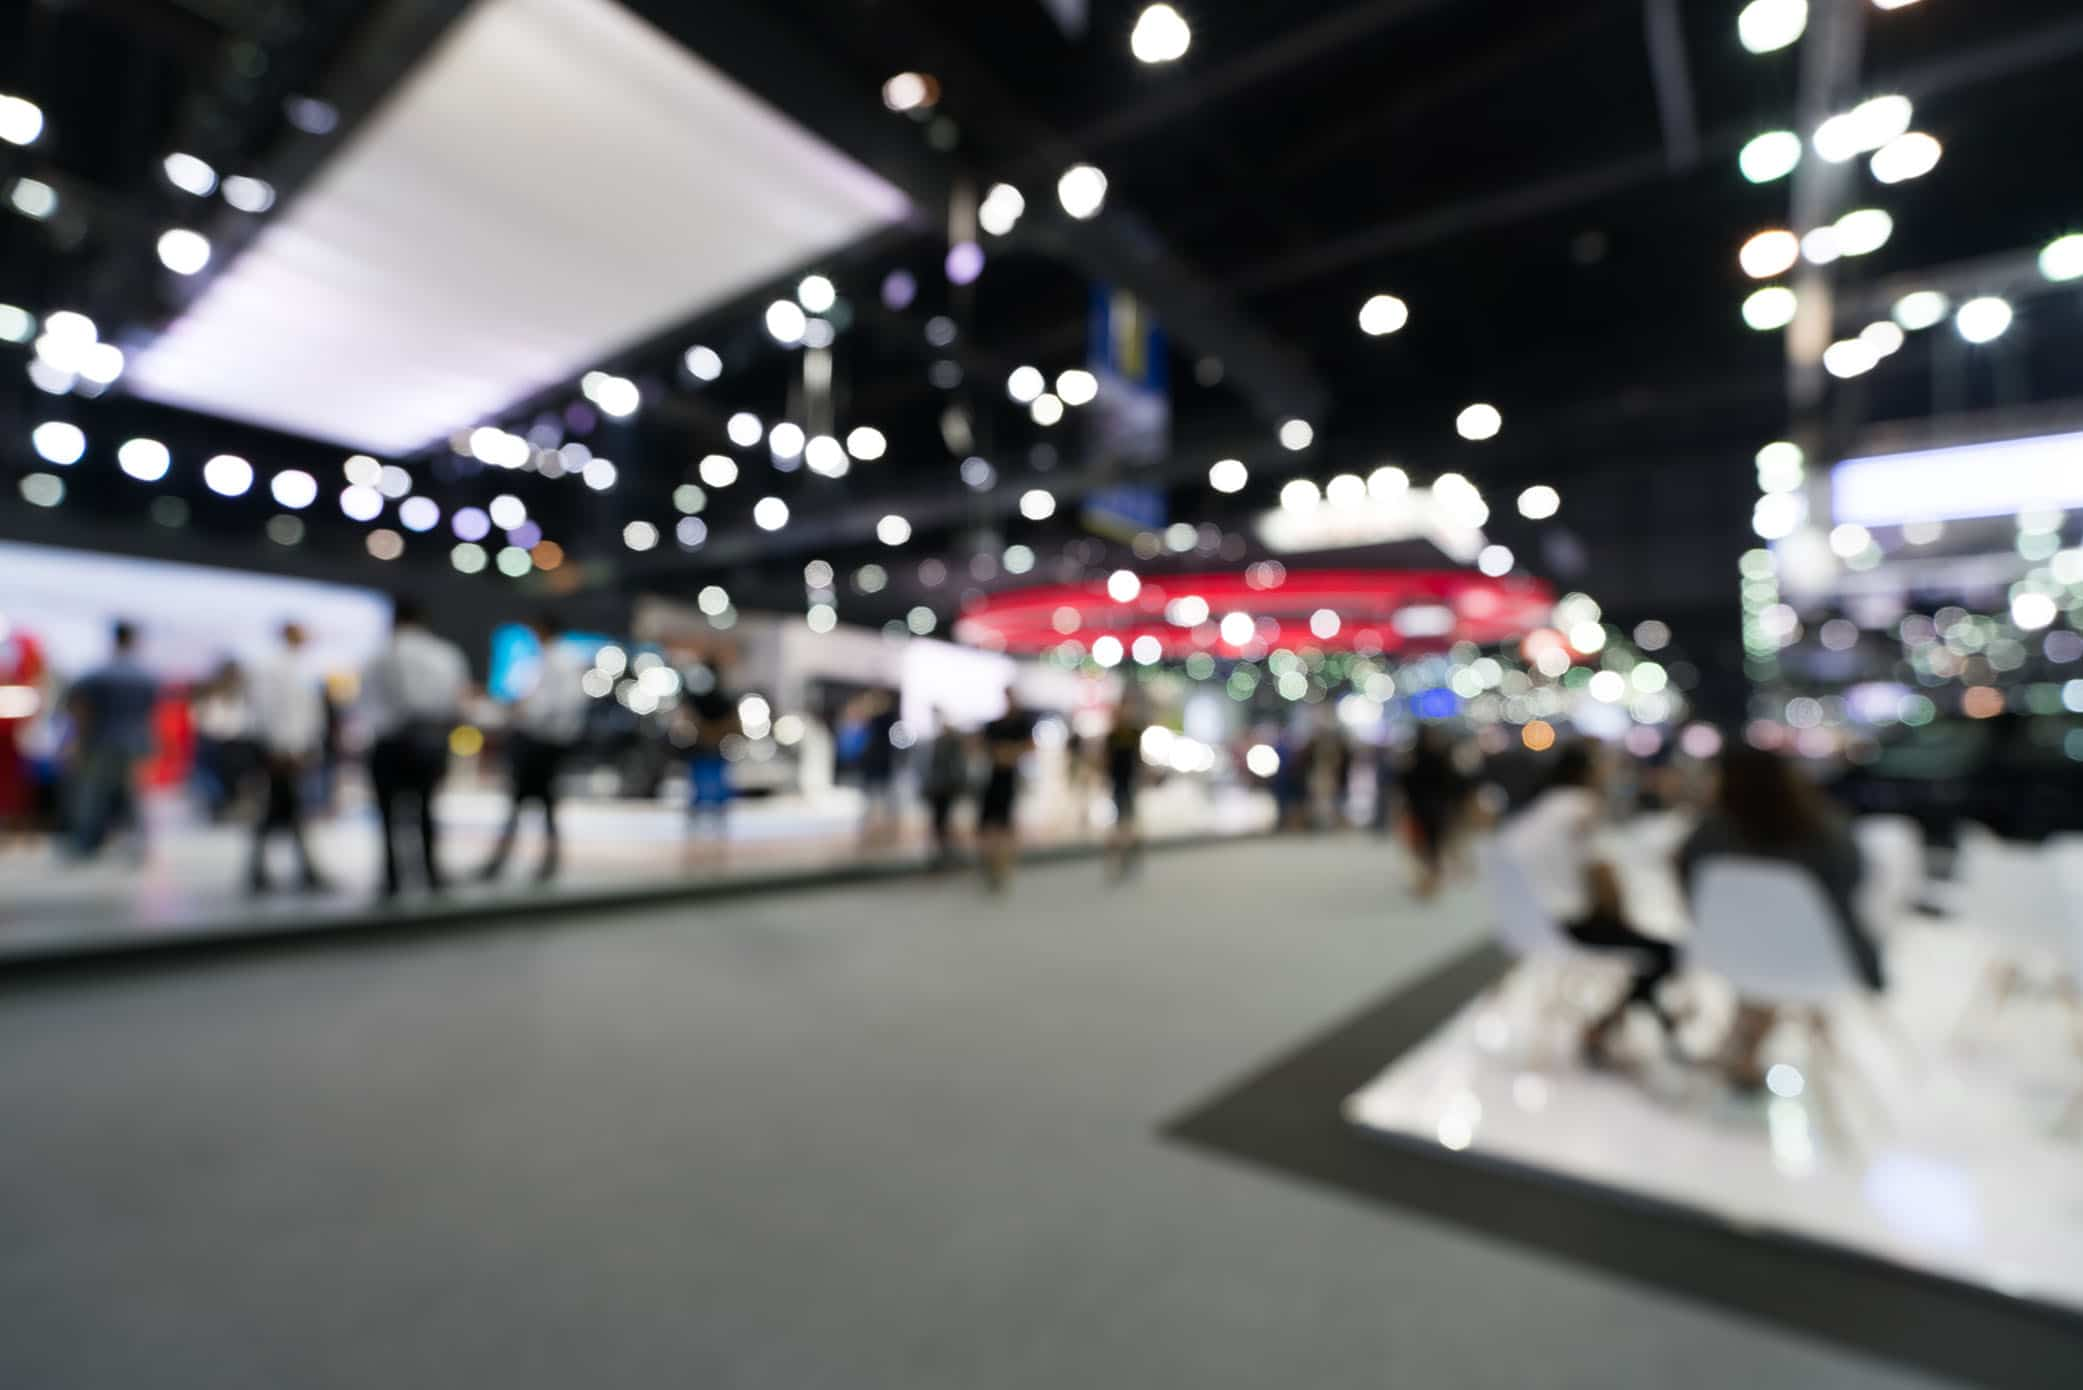 Future of 5G Among Highlights at Mobile World Congress